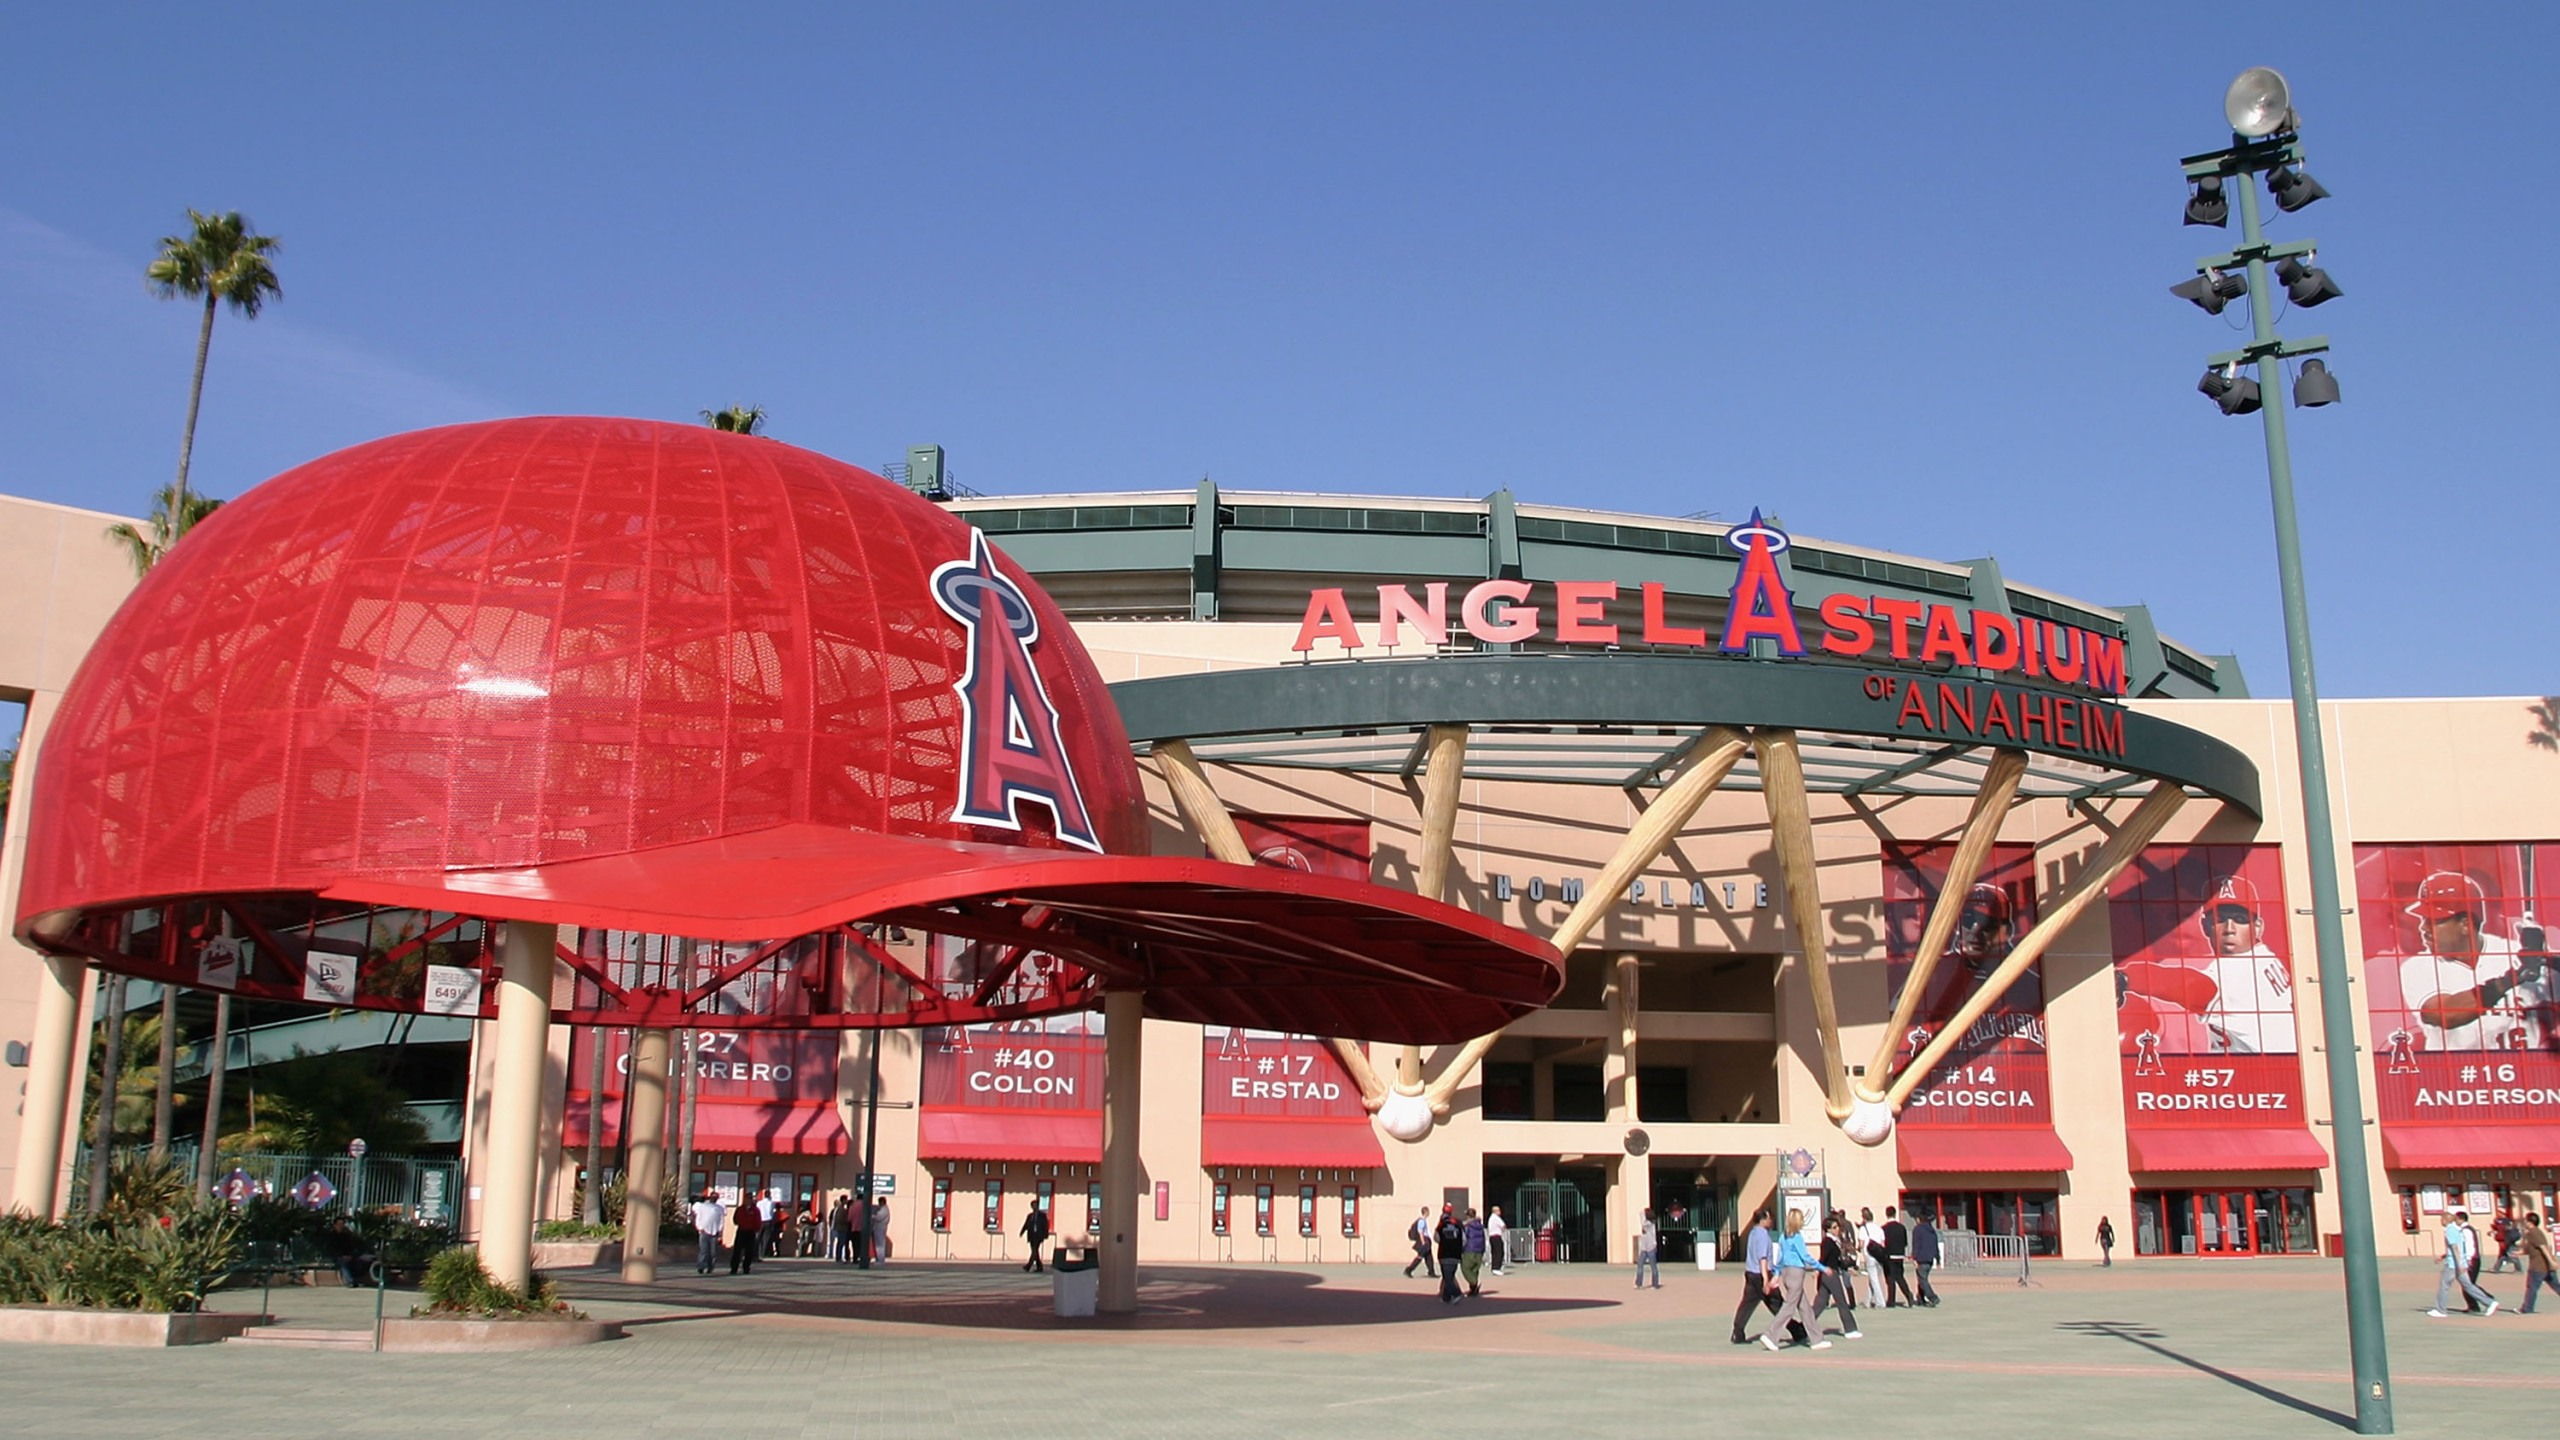 General view of the exterior of Angel Stadium on March 15, 2006. (Christian Petersen/Getty Images)